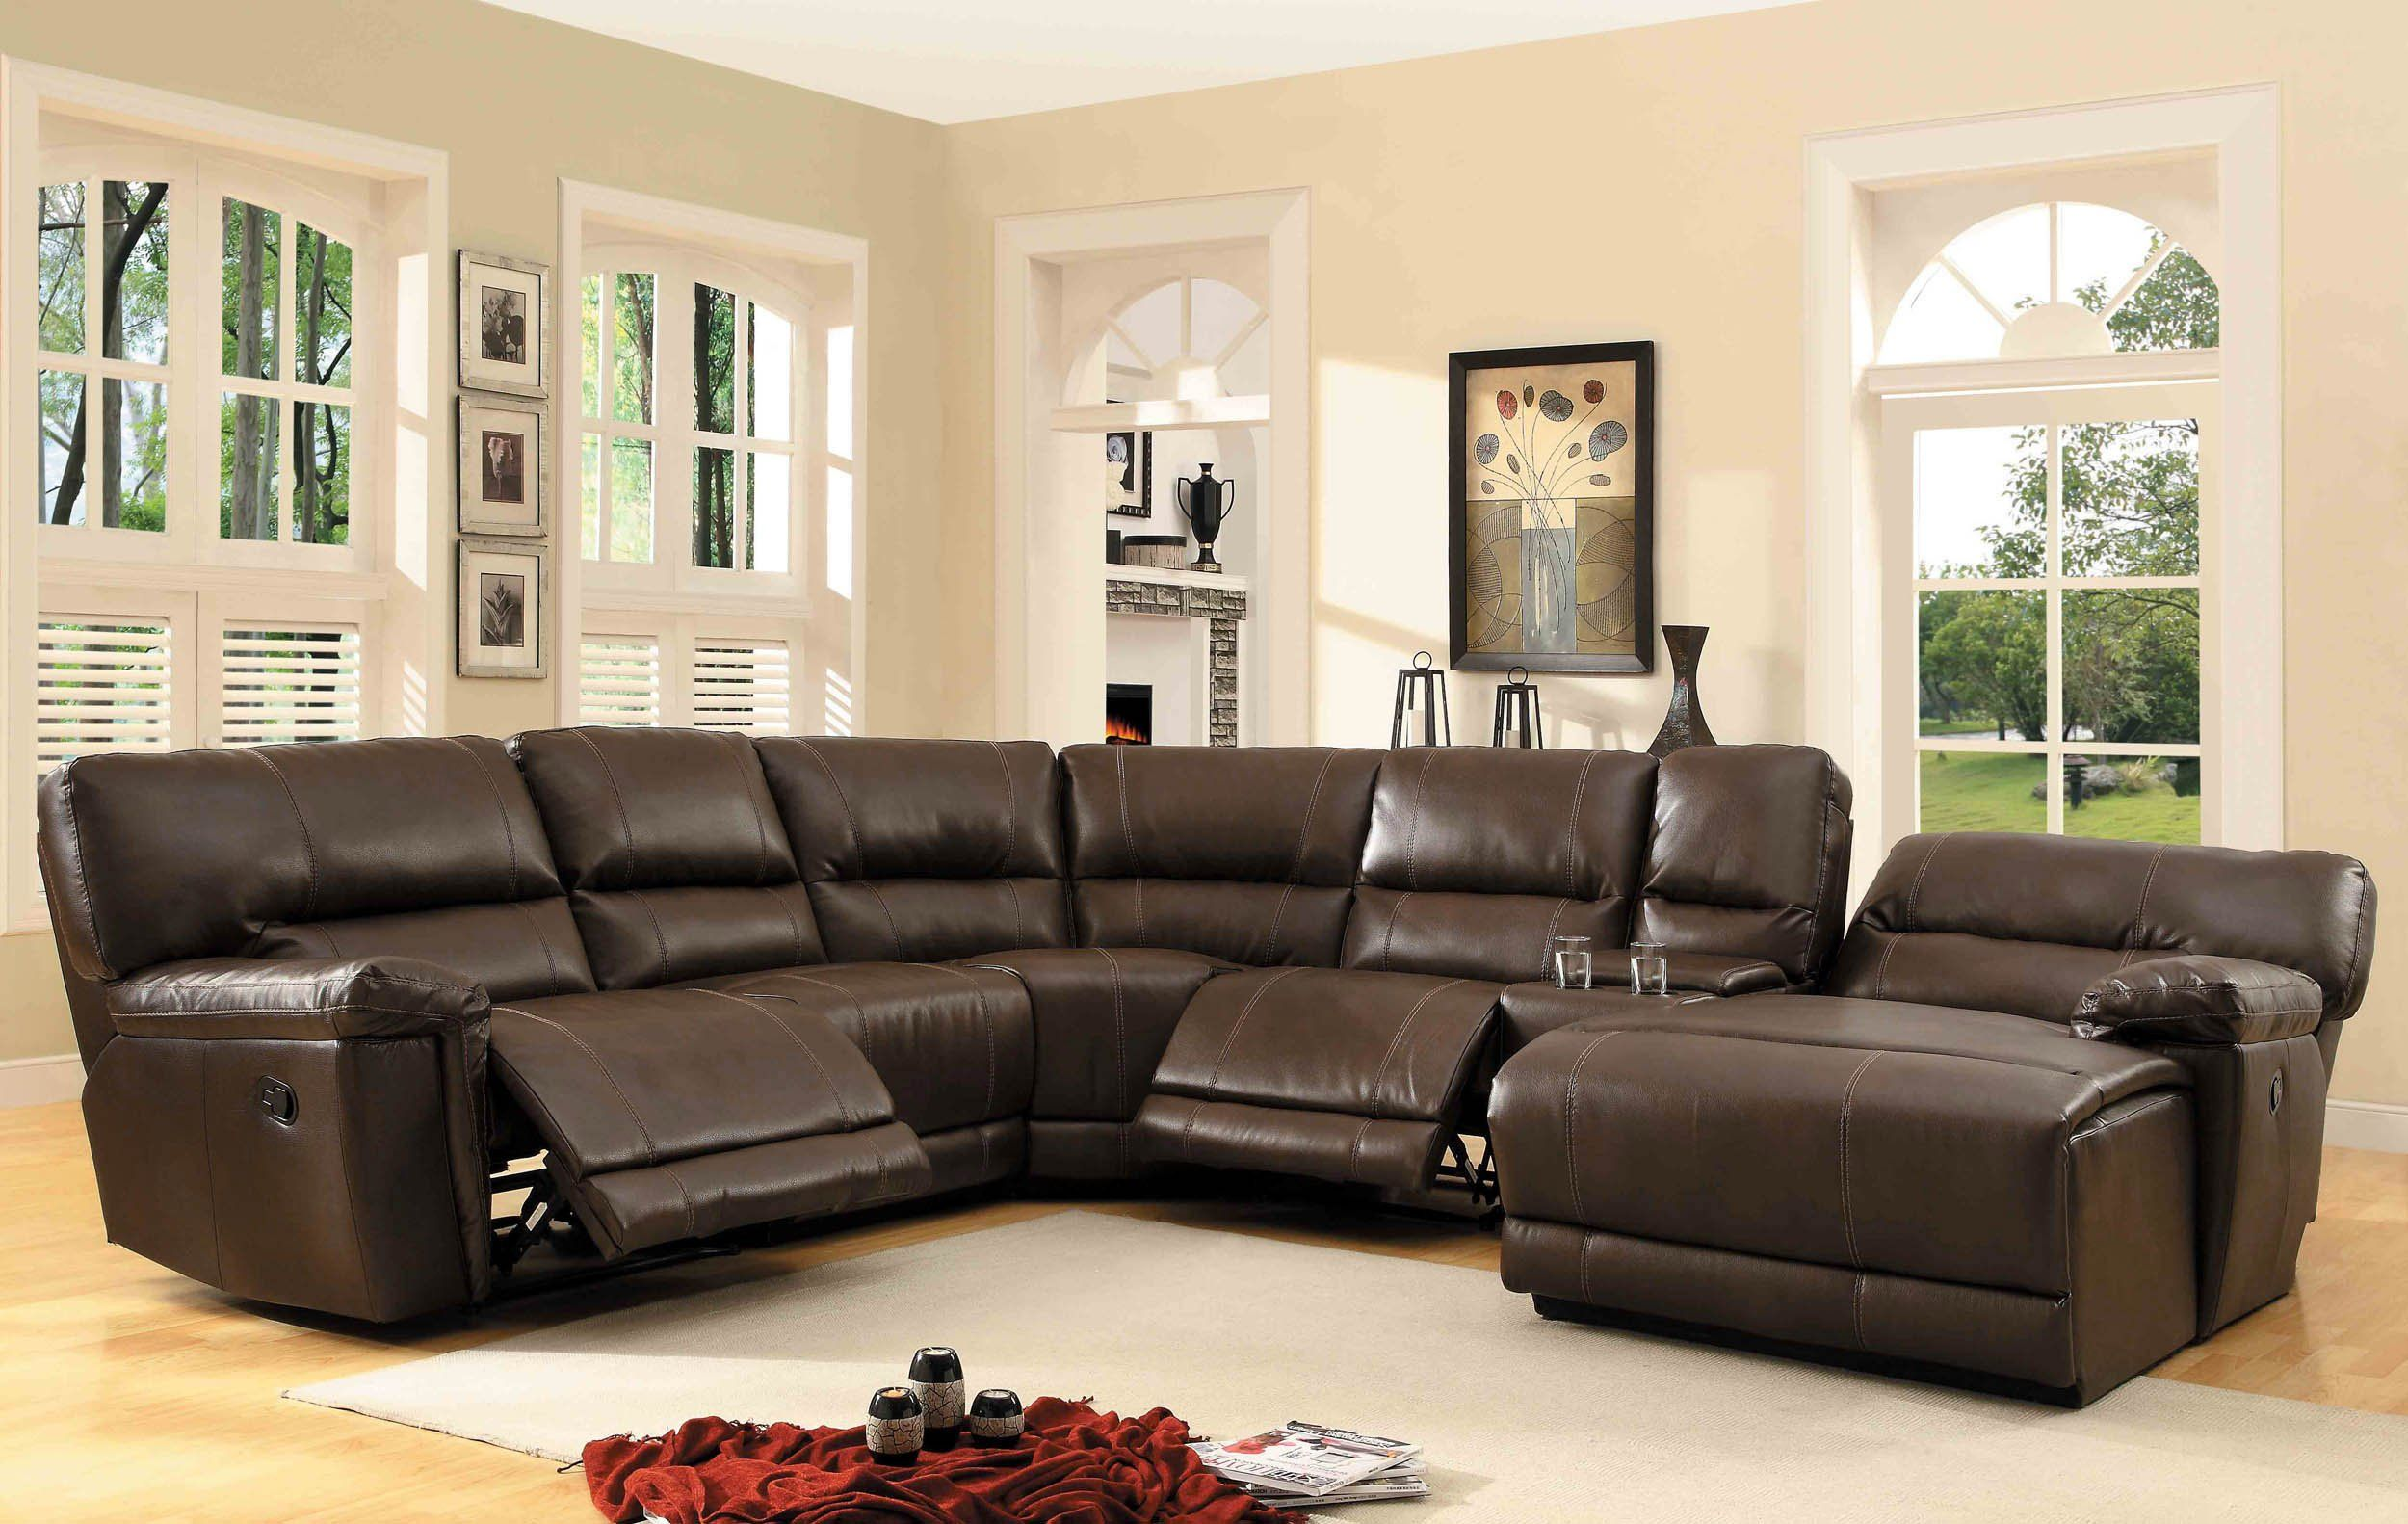 Amazon Com Homelegance 6 Piece Bonded Leather Sectional Reclining Sofa Wit Sectional Sofa With Recliner Sectional Sofa Comfy Leather Reclining Sectional Sofa